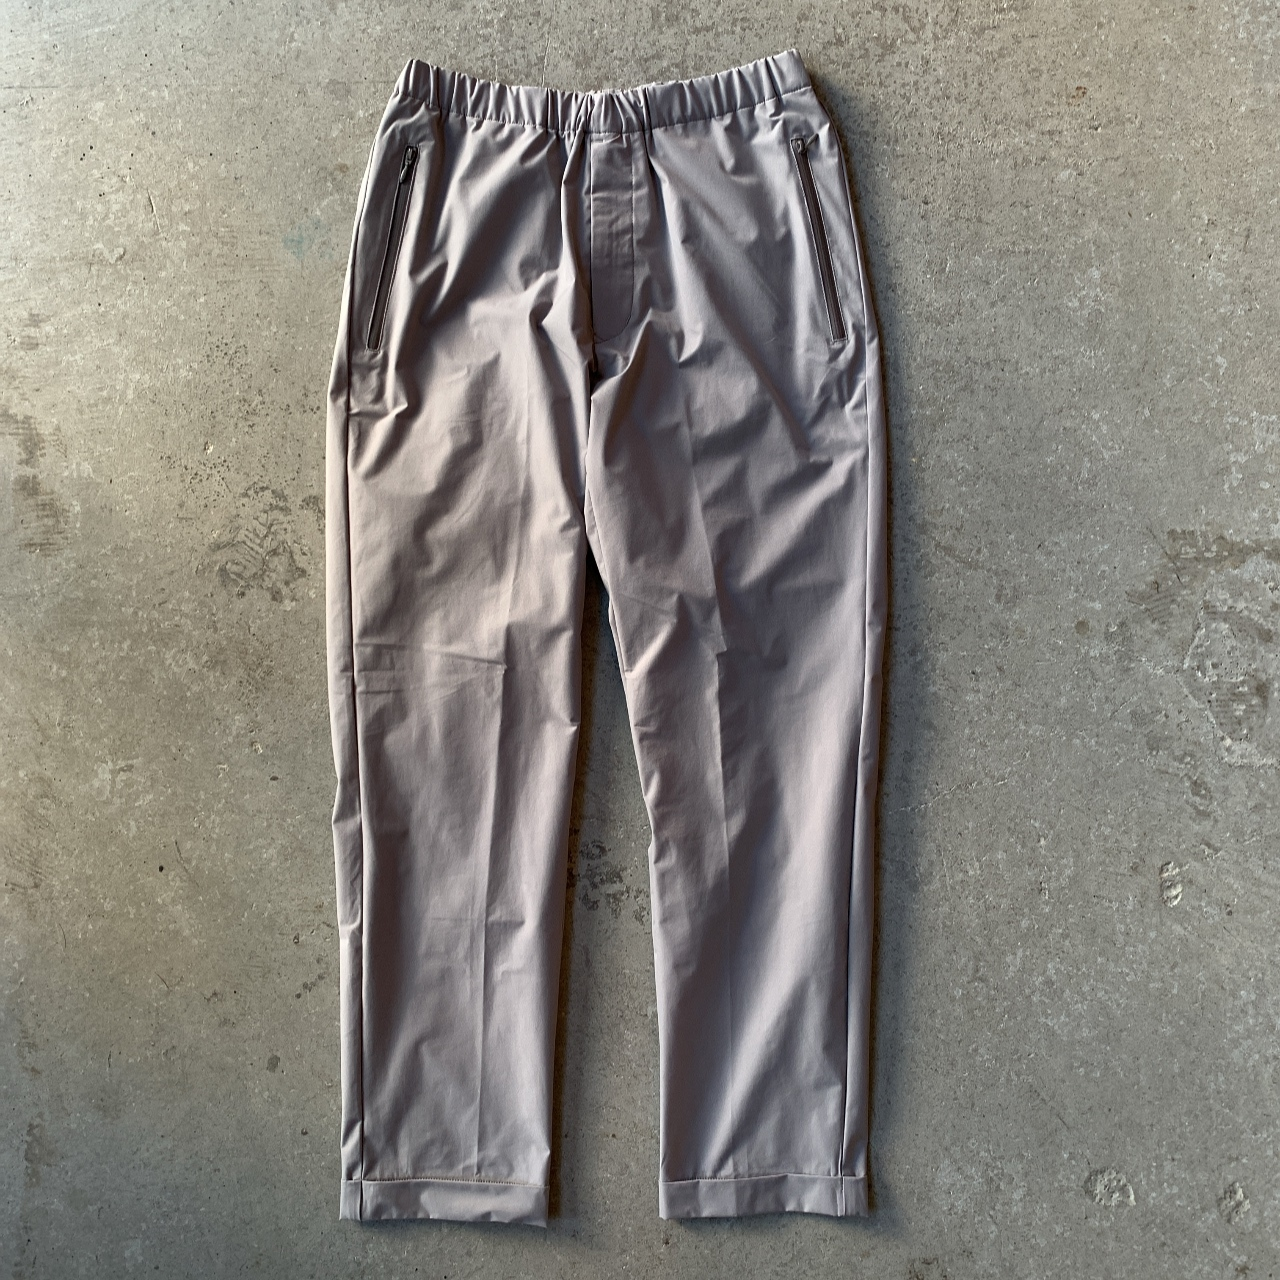 DESCENTE - DESCENTE PAUSE PACKABLE PANTS